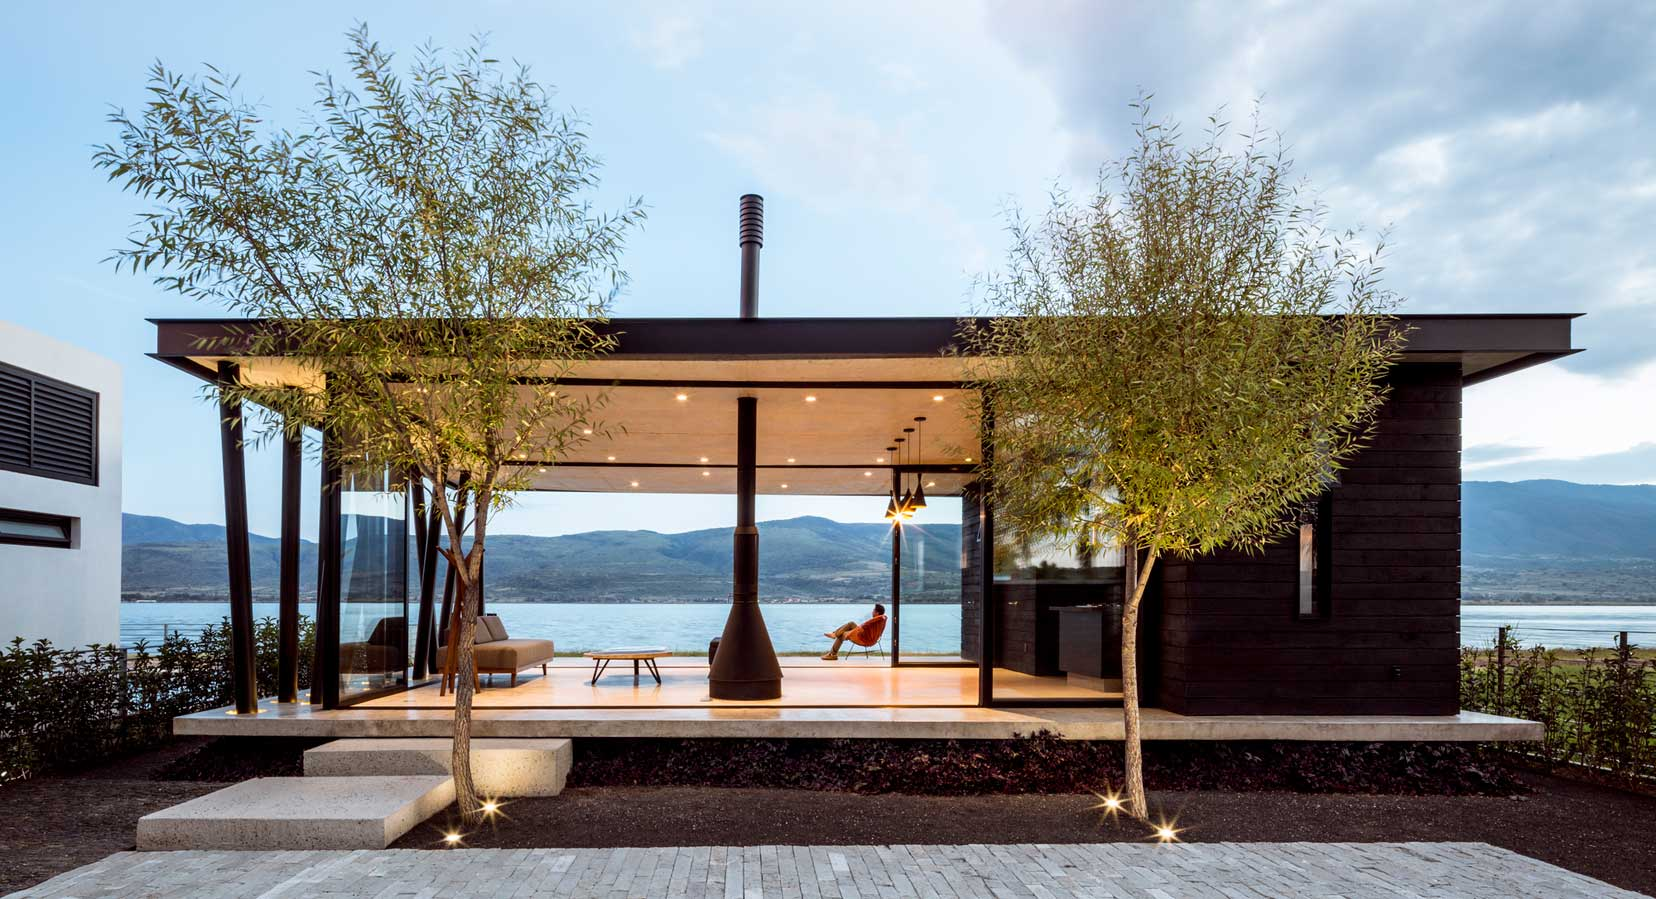 The Perfect Escape: The F+G Cajititlán Terrace by Jaime Copado & Francisco Sarabia